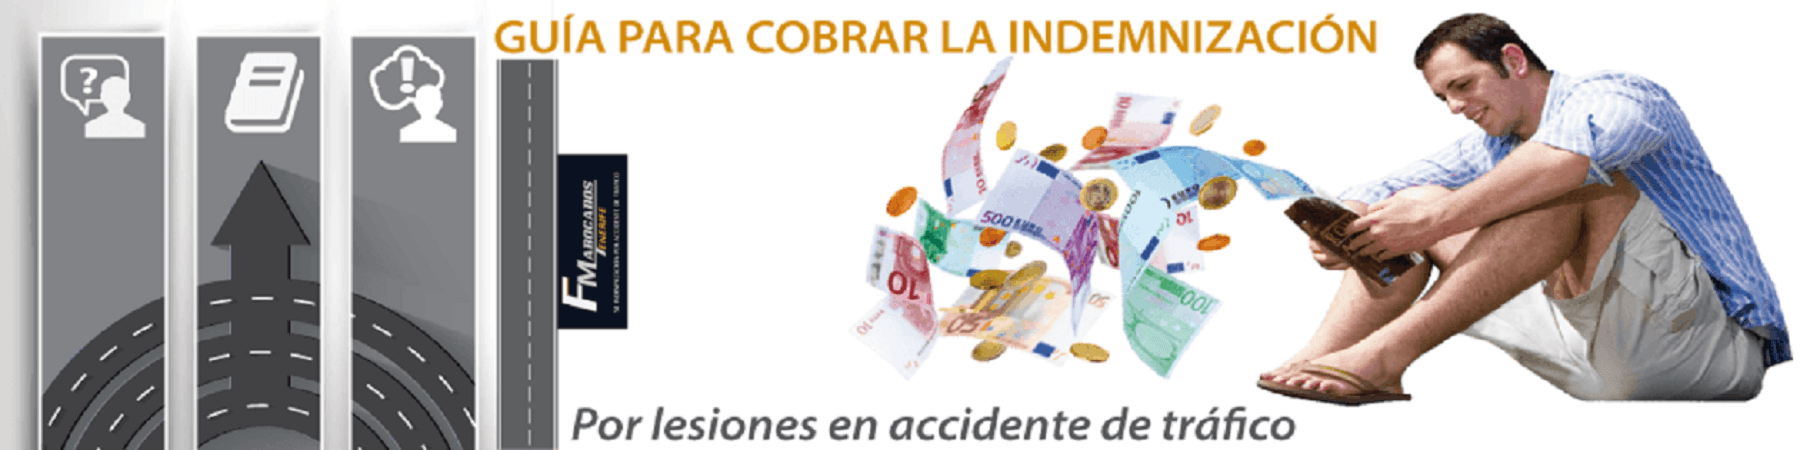 cobrar la indemnización por accidente de tráfico